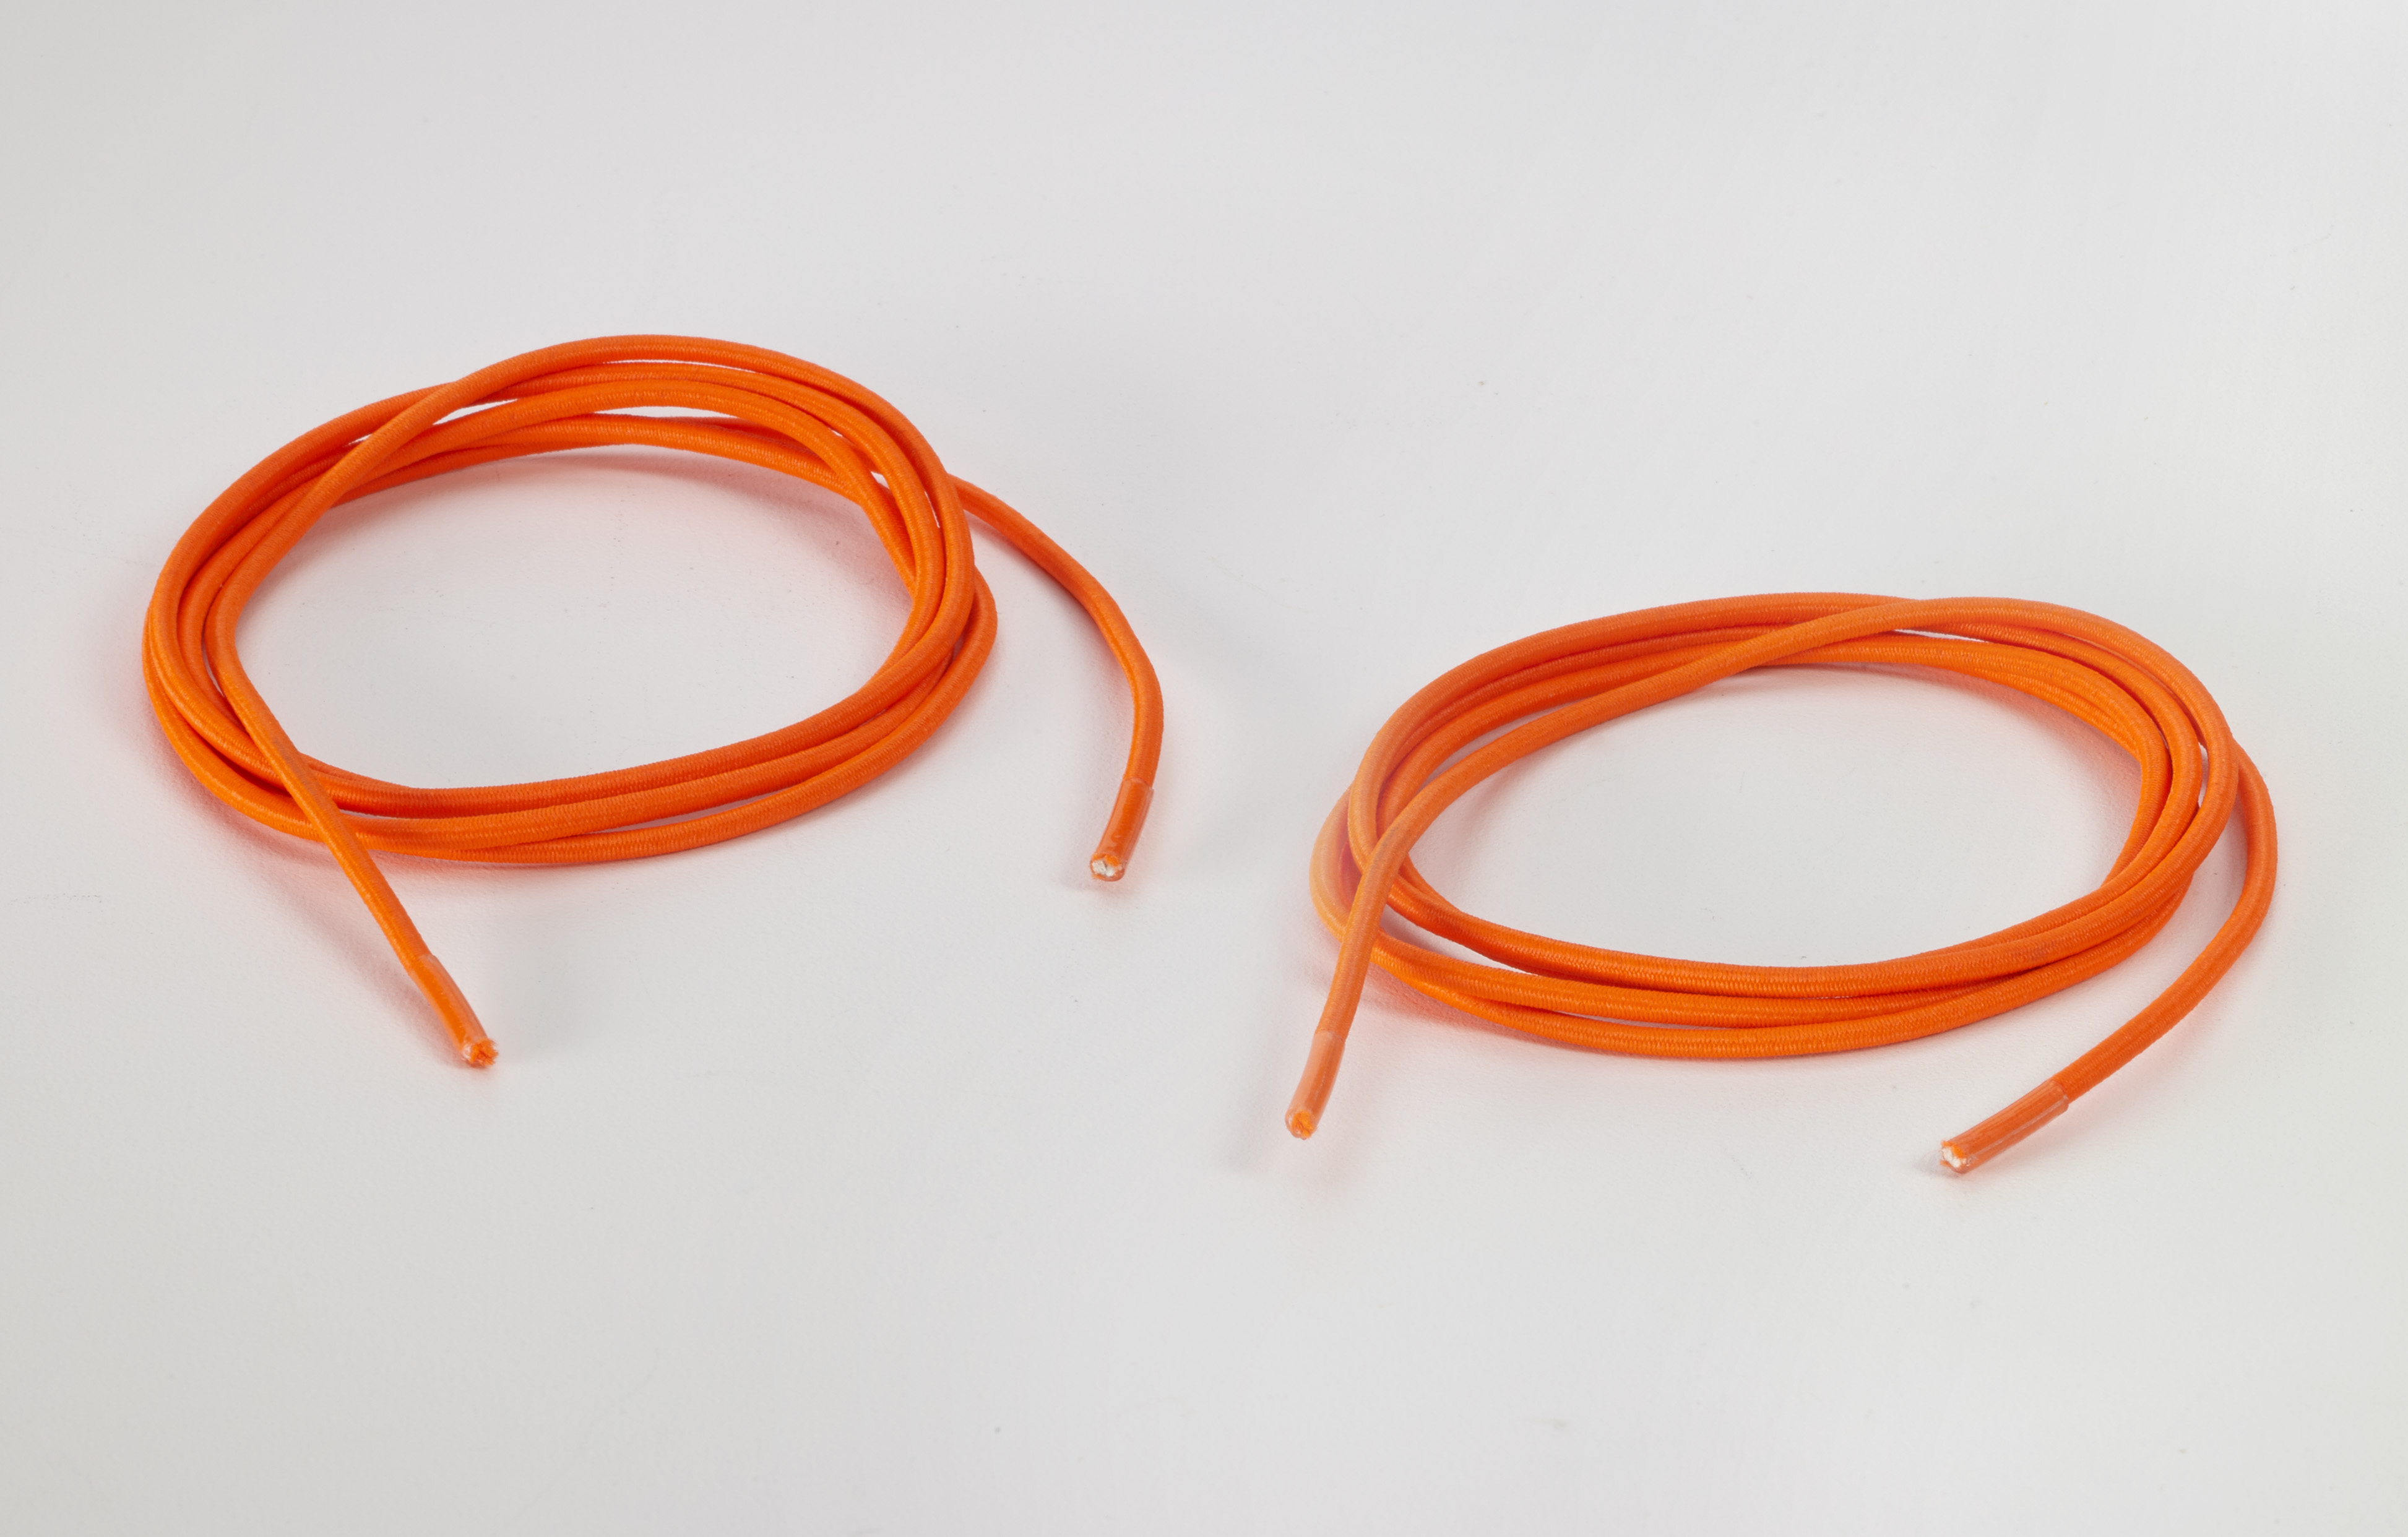 8900-NO-48SH, Shock cord 5/8 tipped laces, 48 lengths, Neon orange, Mutual Industries